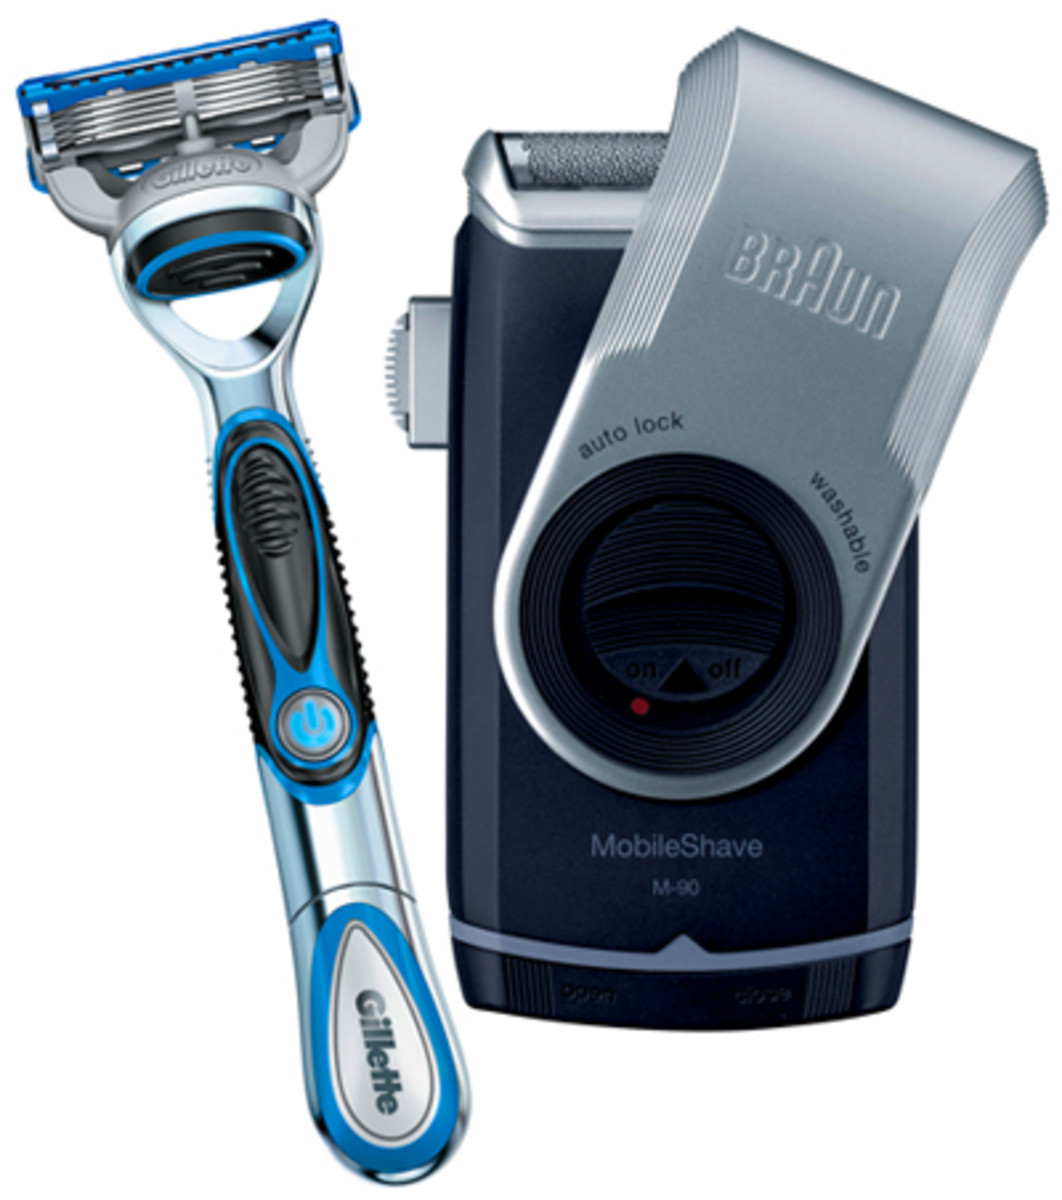 Gillette Fusion and Braun Mobile Shave